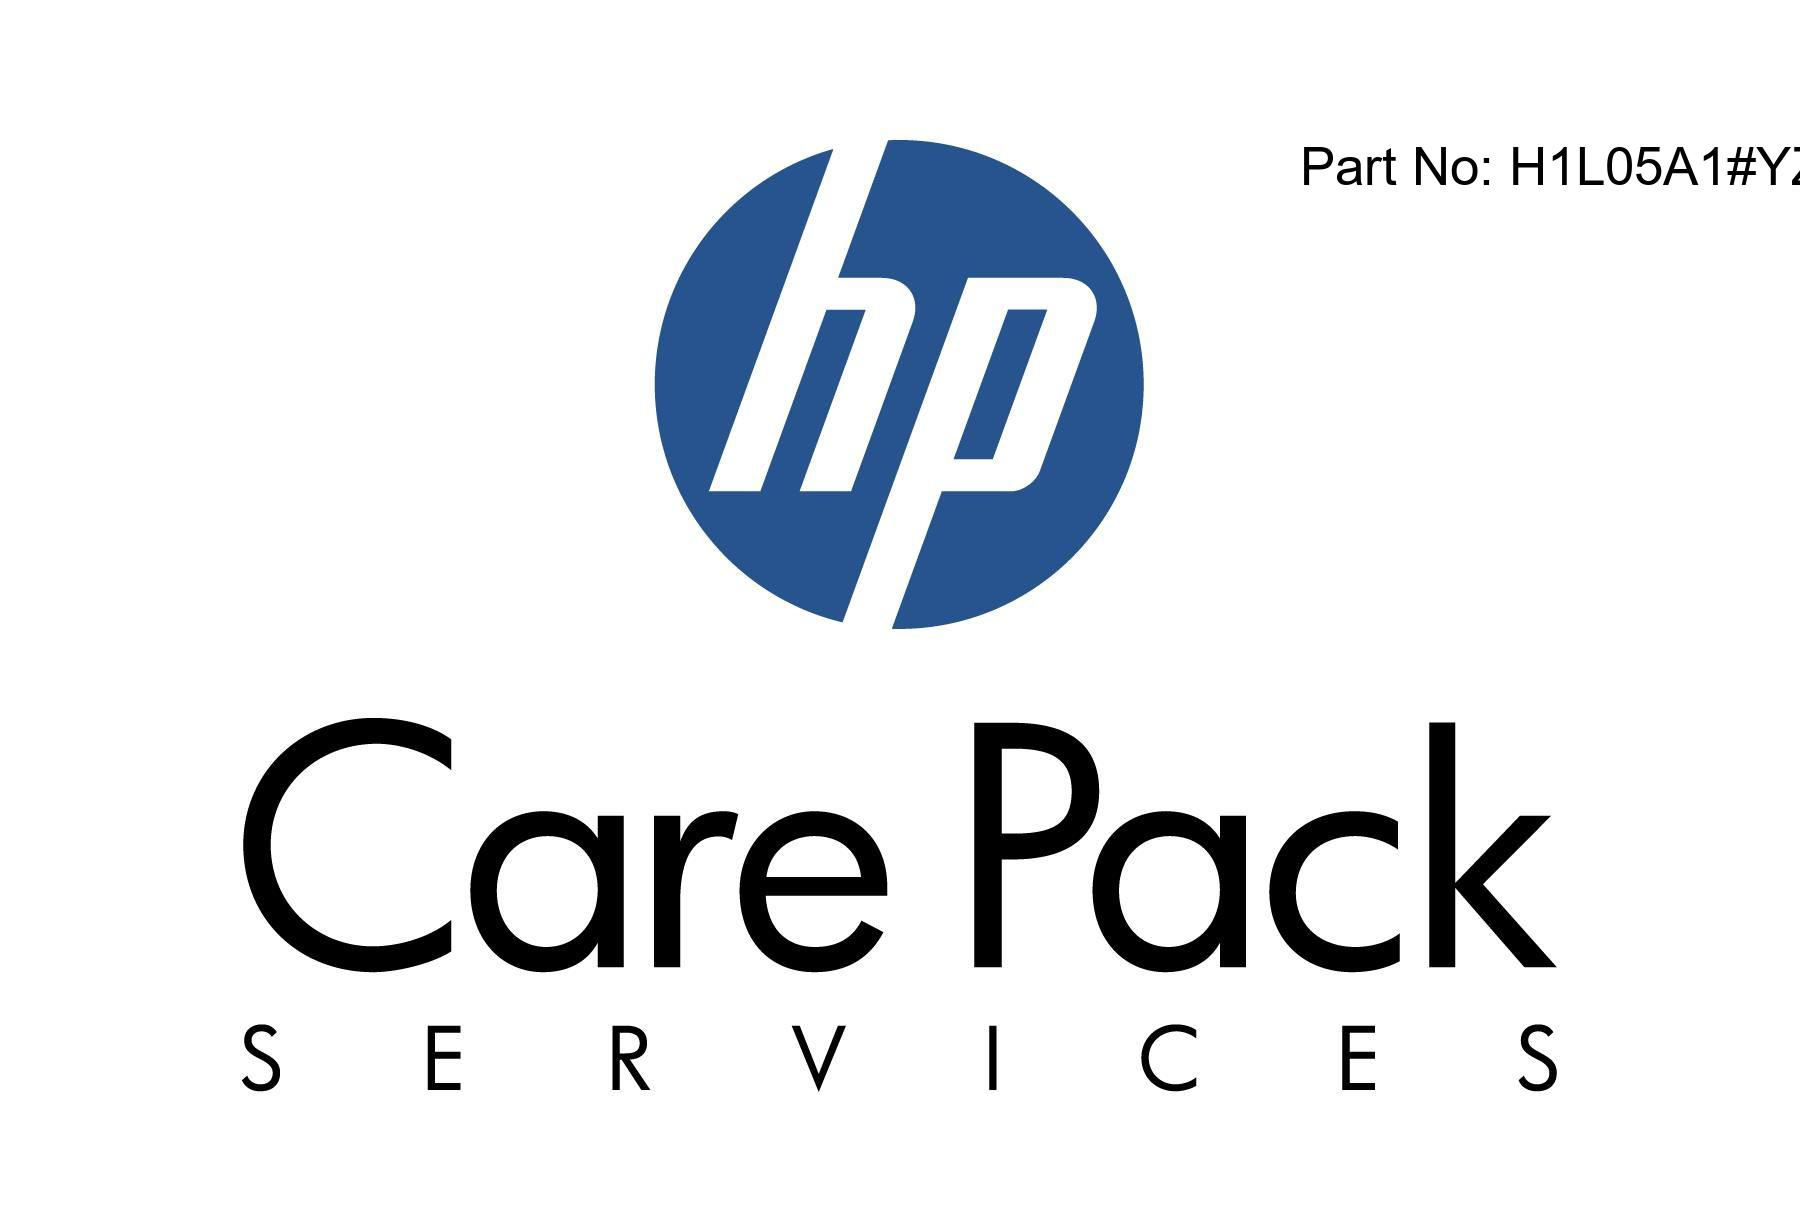 Standard Partner Branded Support - Technical support - for HPE 3PAR 8200 Remote Copy - 8 drives - phone consulting - 1 year - 24x7